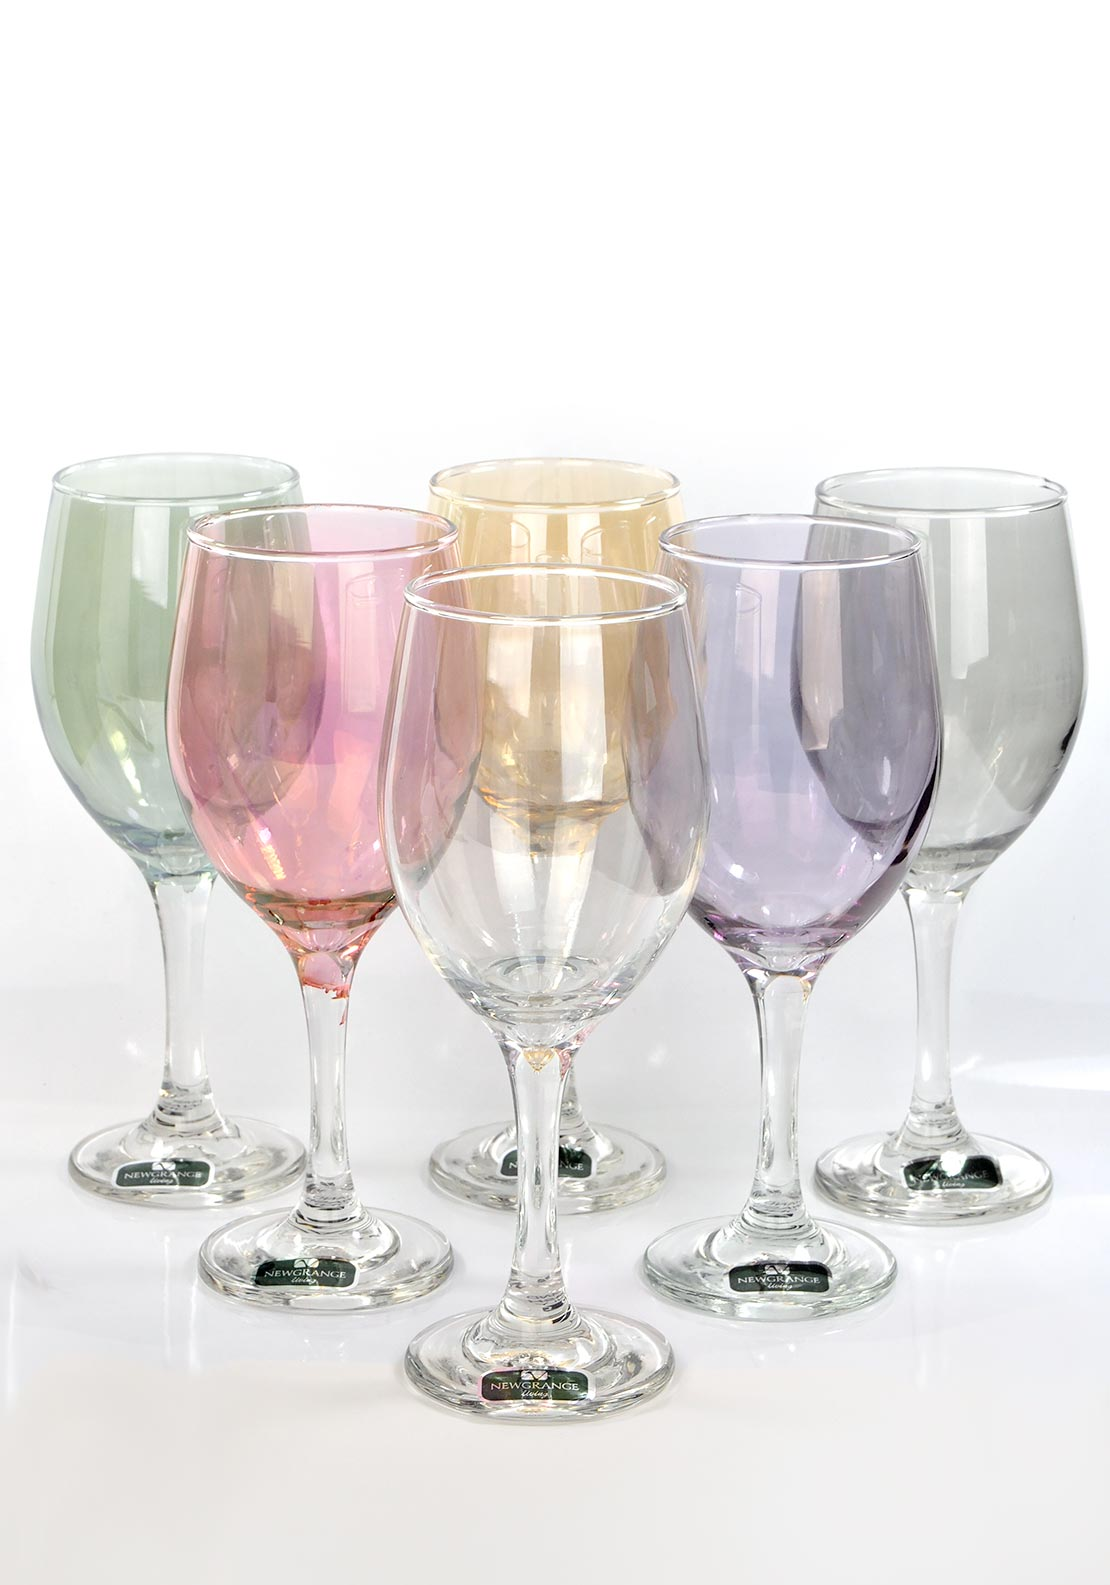 Newgrange Living Lustre Wine Glasses Set of 6 Party Glasses